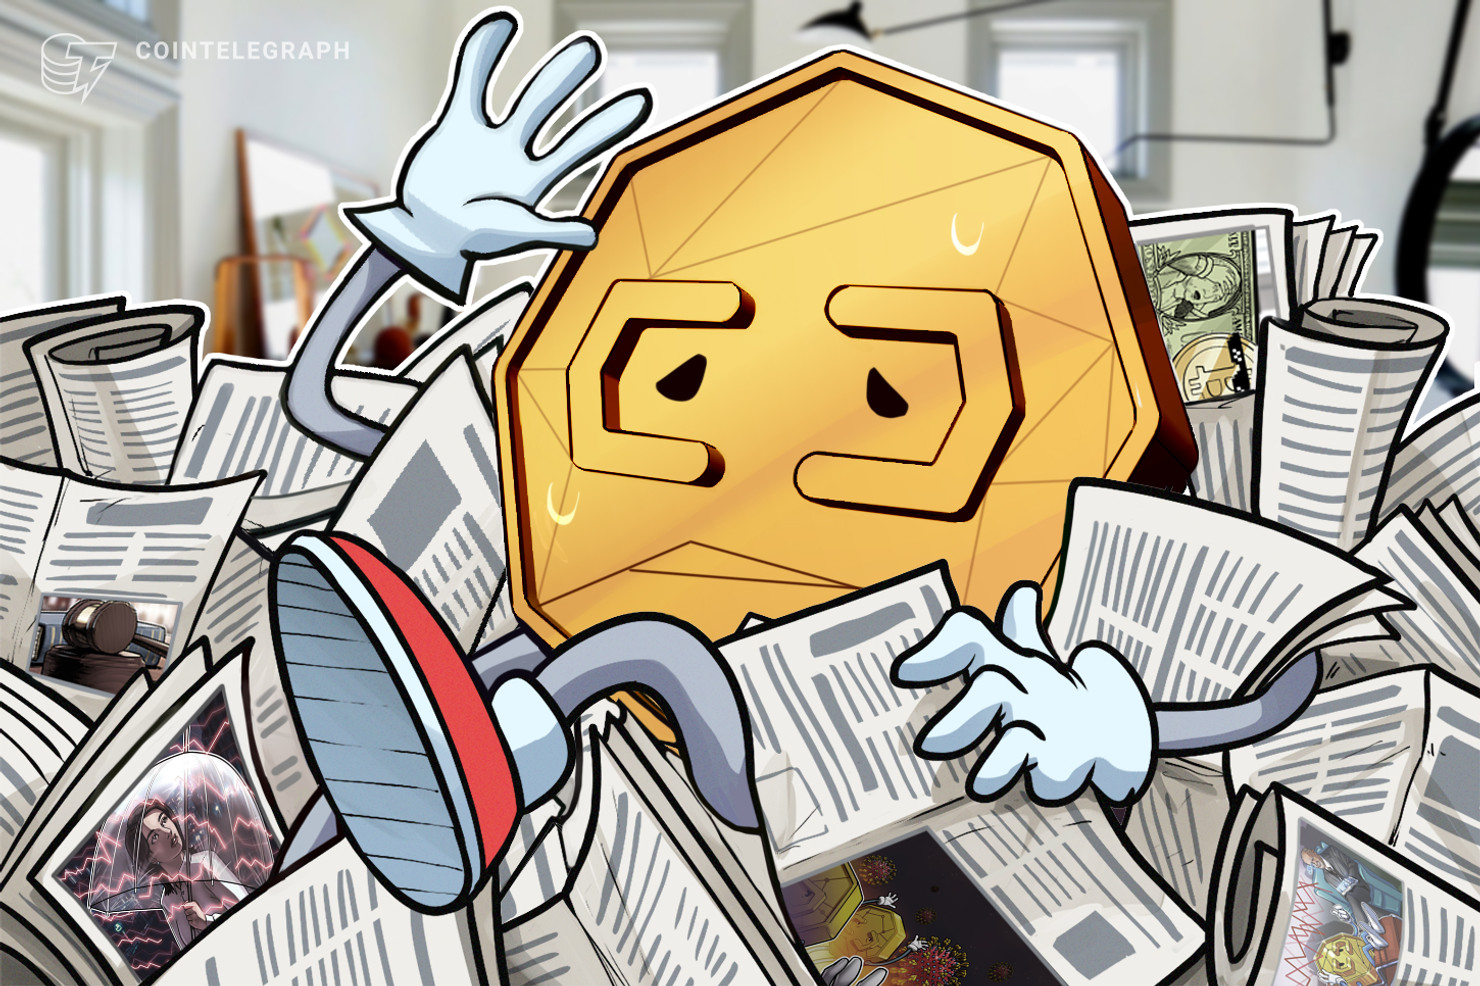 Counterfeit Rubles, Major Lawsuits, and Security Issues: Bad Crypto News of the Week